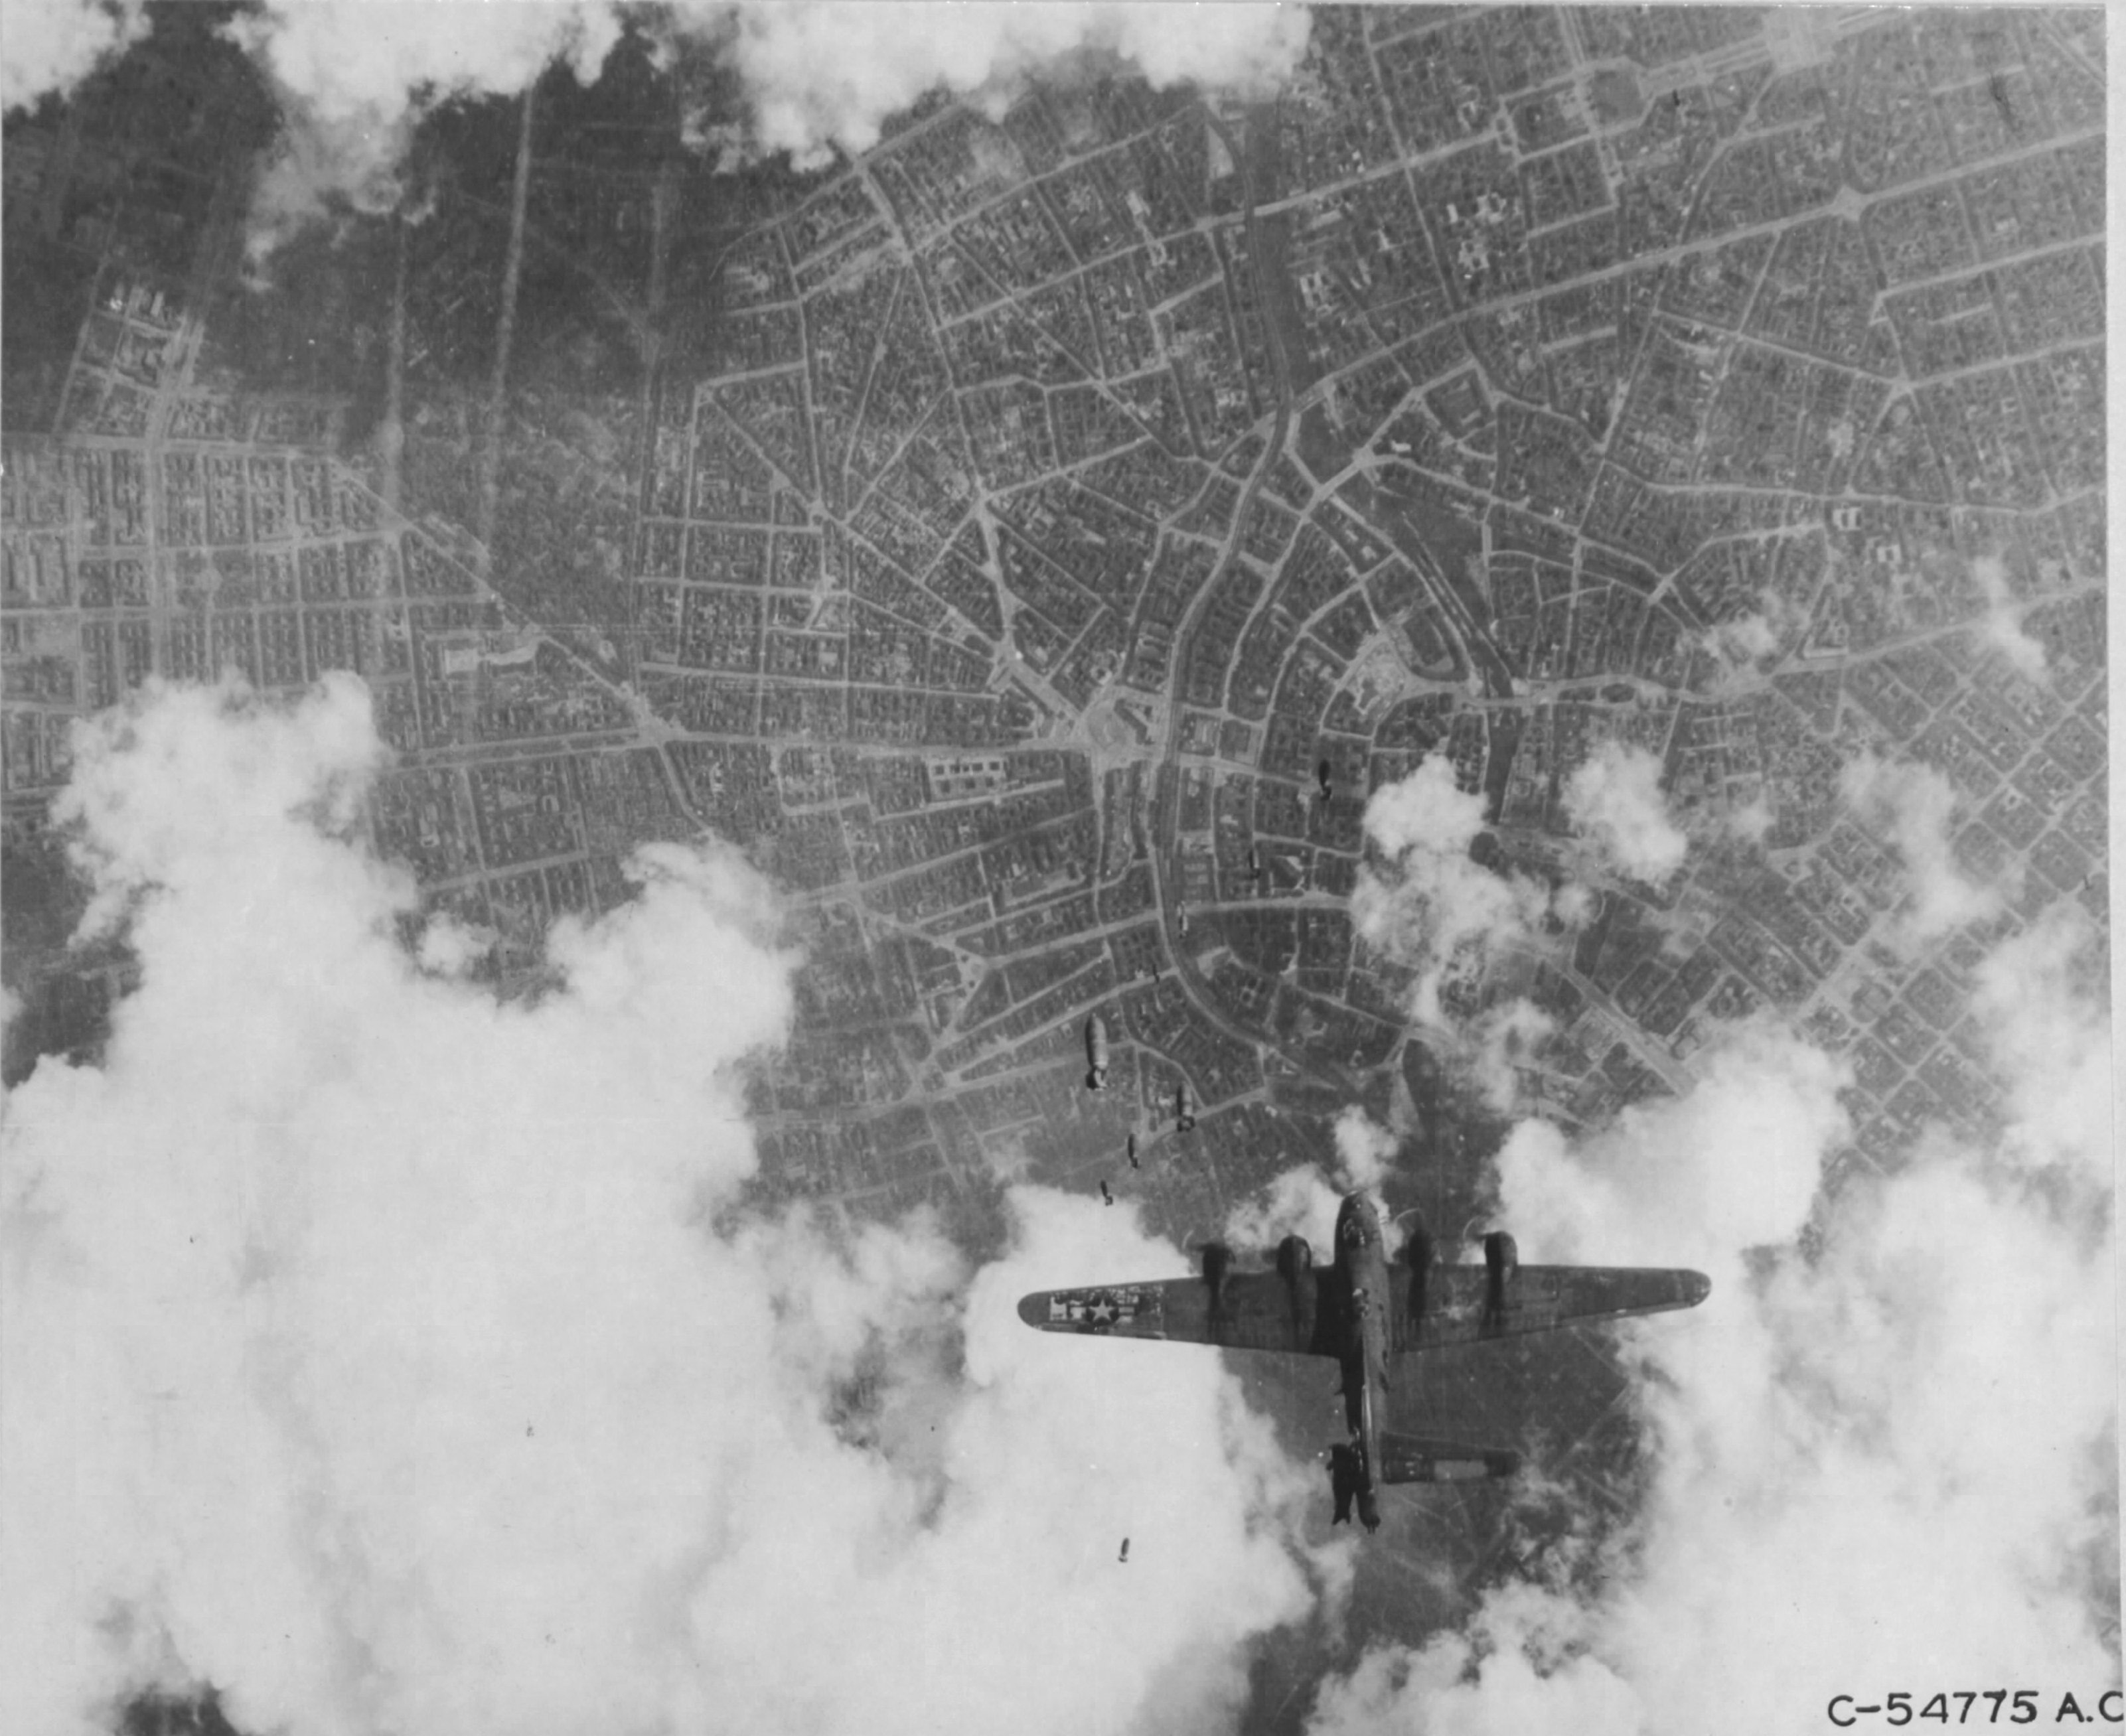 B-17G Fortress 'Miss Donna Mae II' drifted under another bomber on a bomb run over Berlin, 19 May 1944. A 1,000 lb bomb from above tore off the left stabilizer and sent the plane into an uncontrollable spin. All 11 were killed. Photo 4 of 4